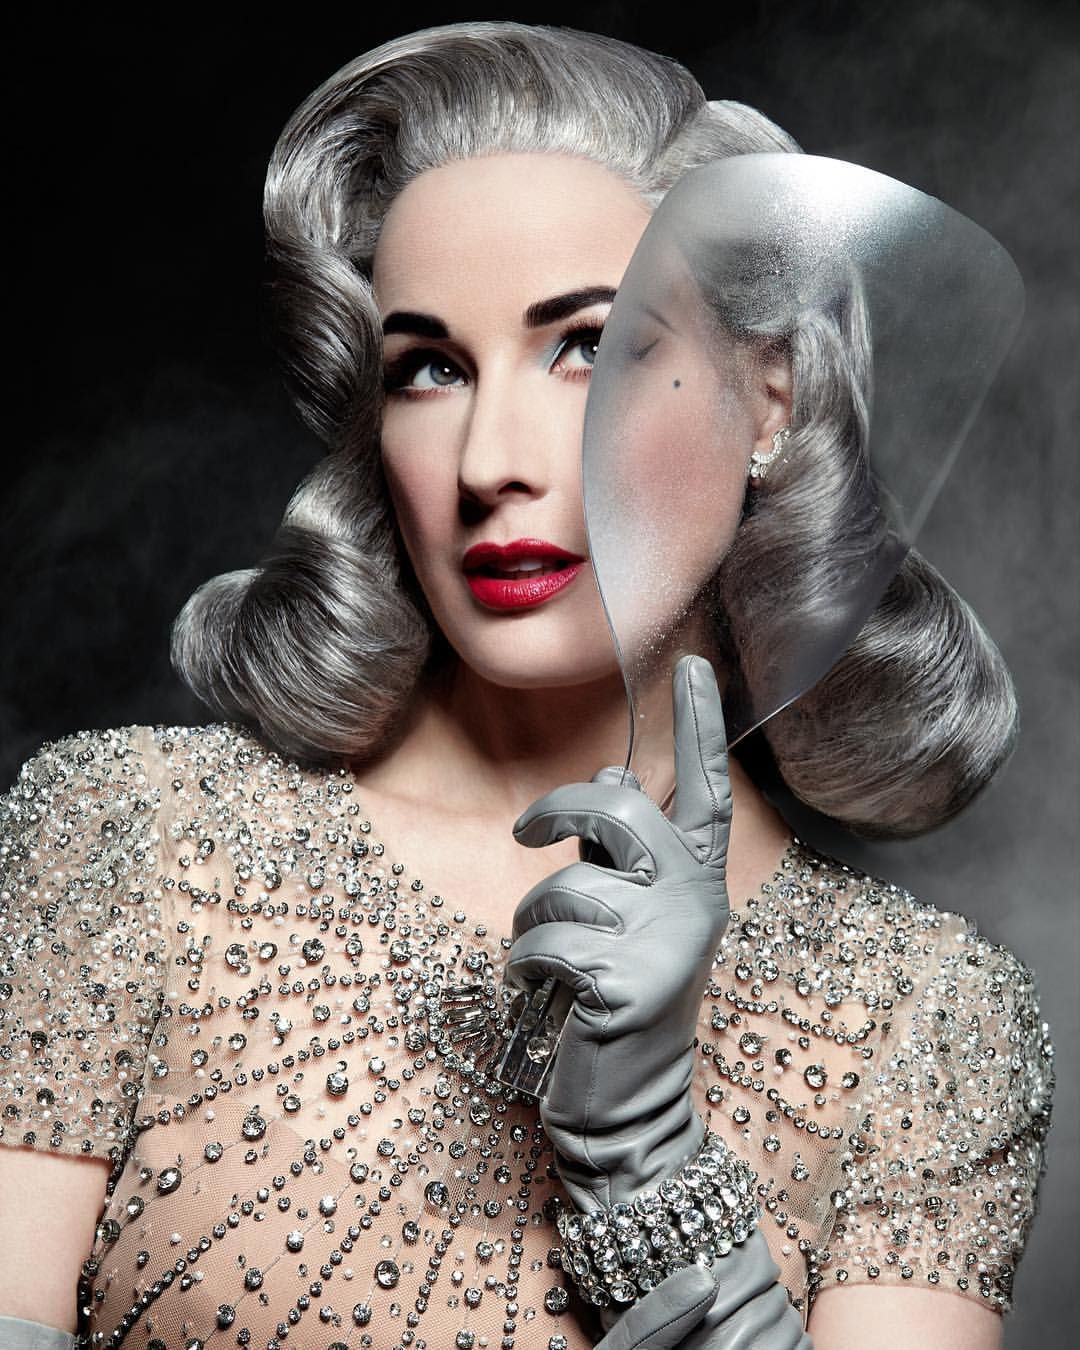 aae1e89bfb69 love Dita Von Teese with silver hair!!